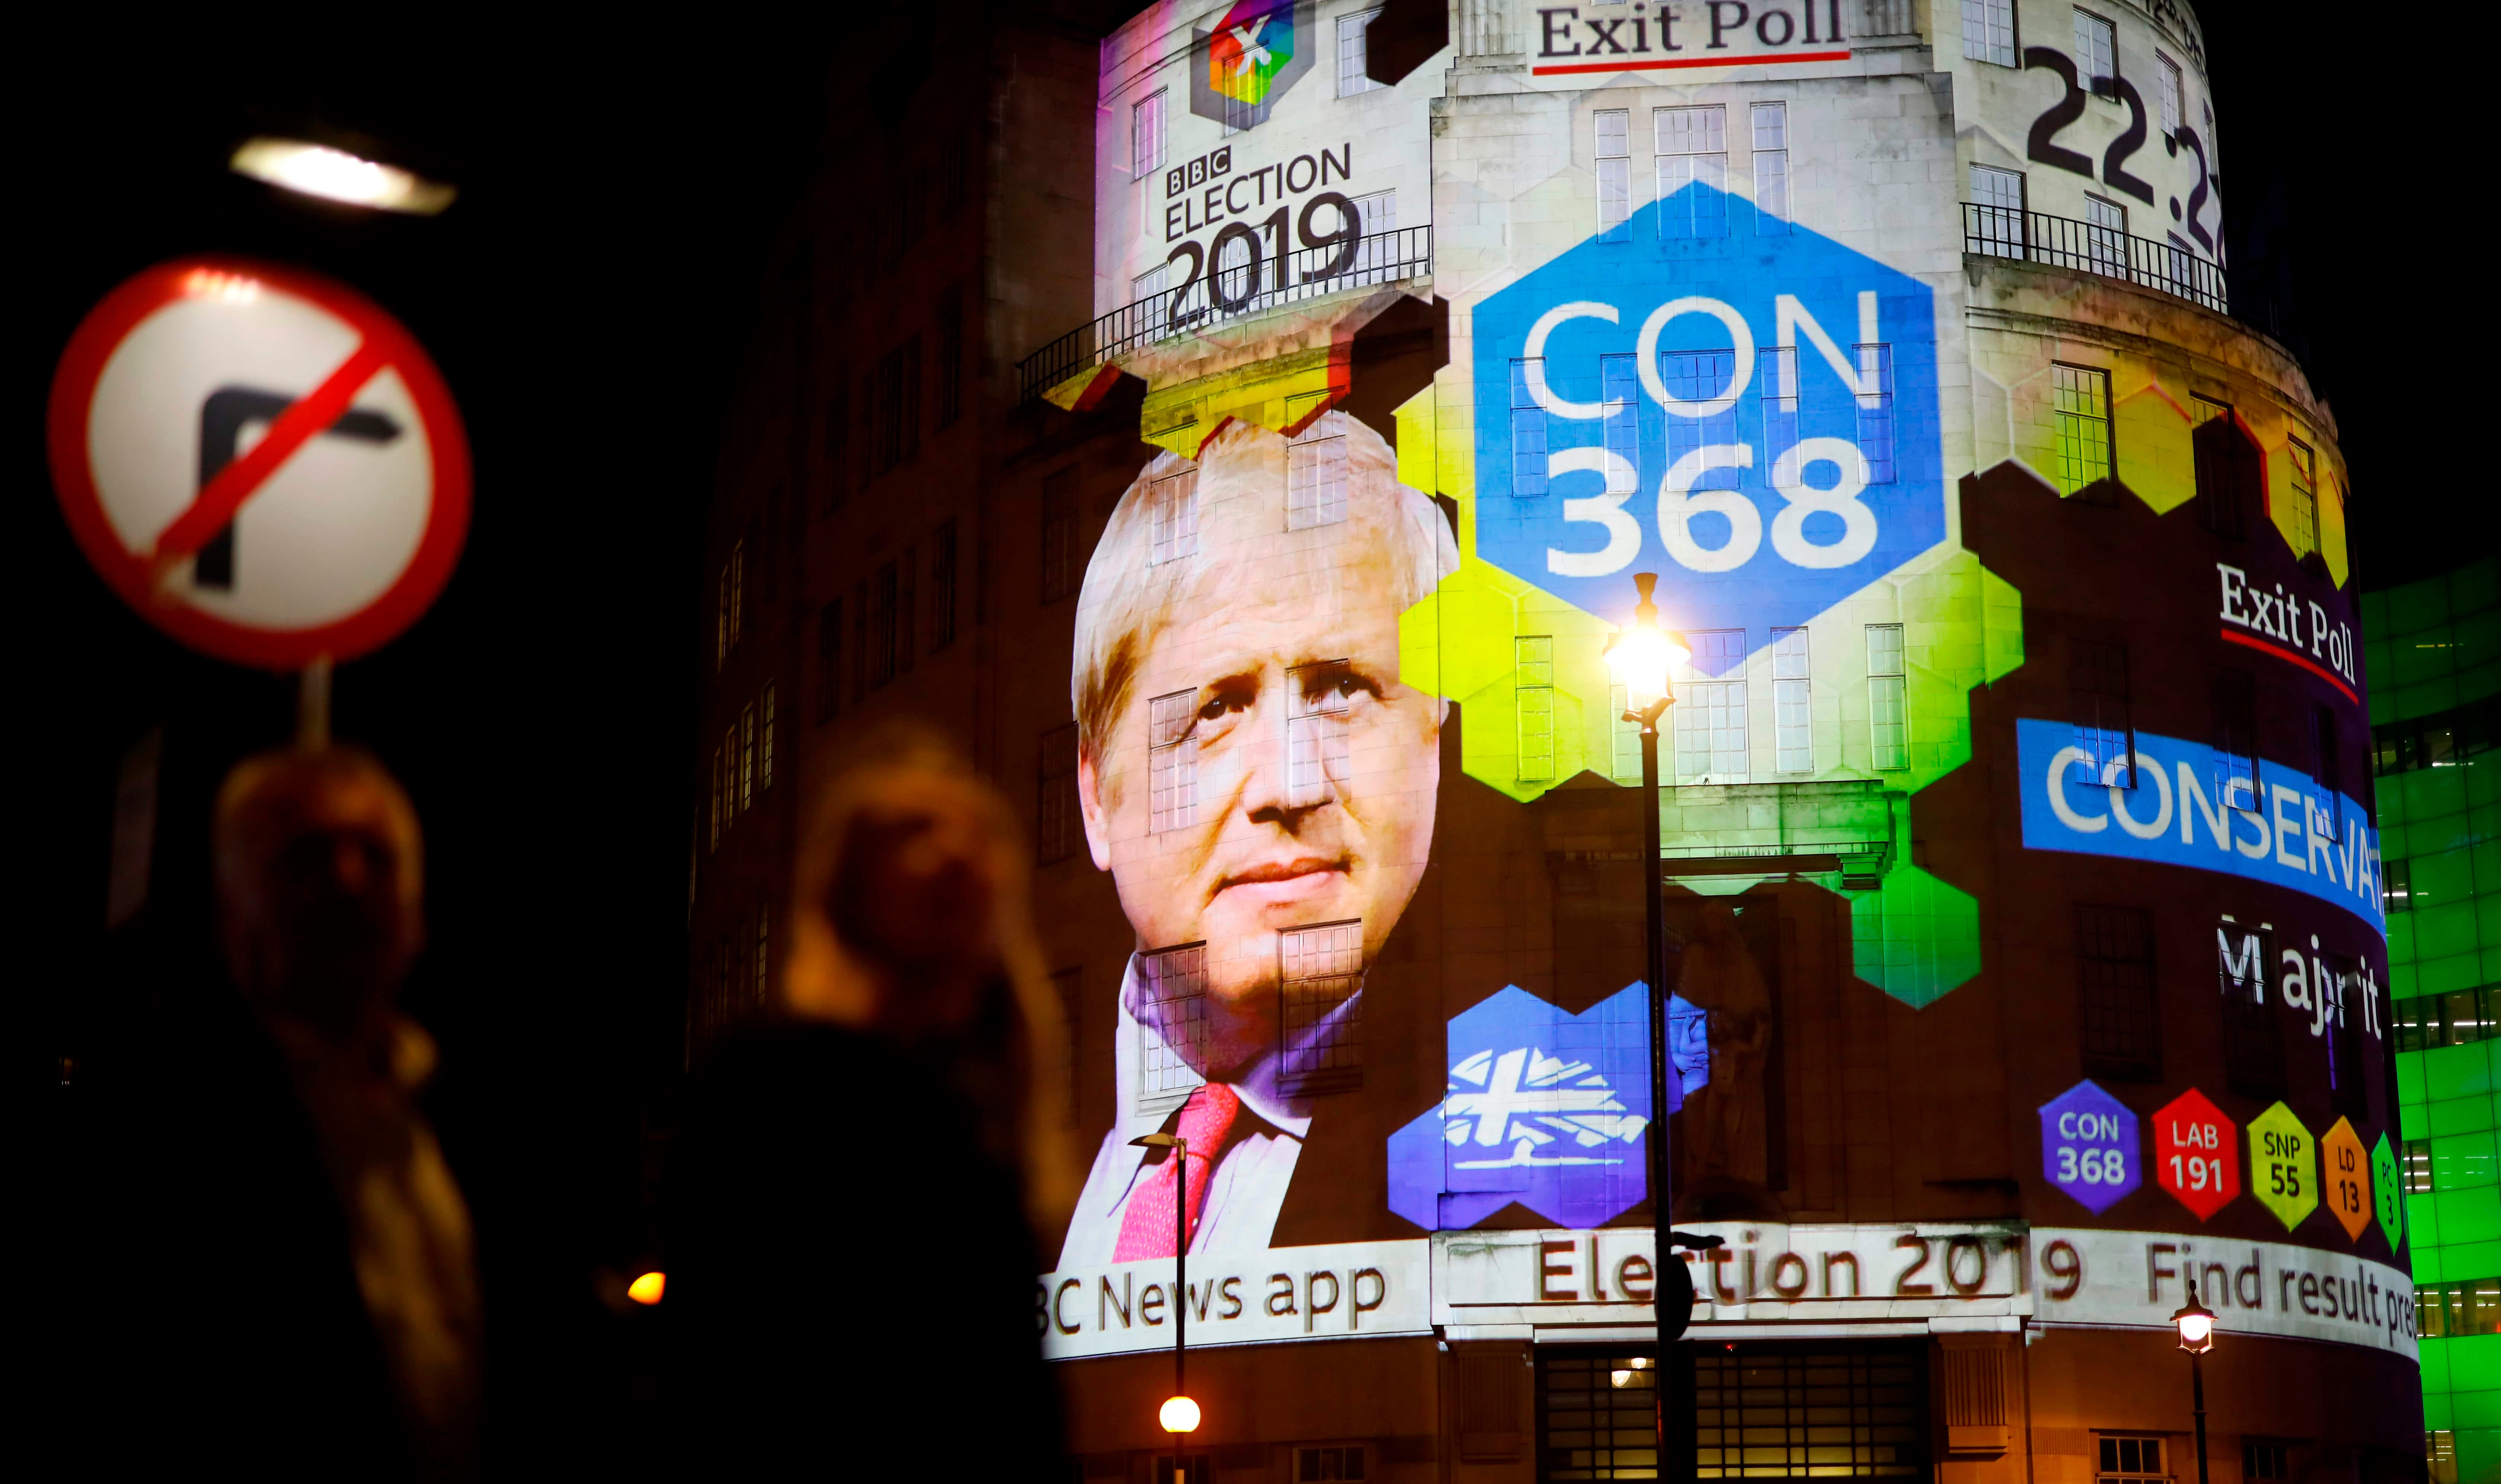 Boris Johnson's Conservative Party projected in exit polls to win UK election, clearing path for Brexit